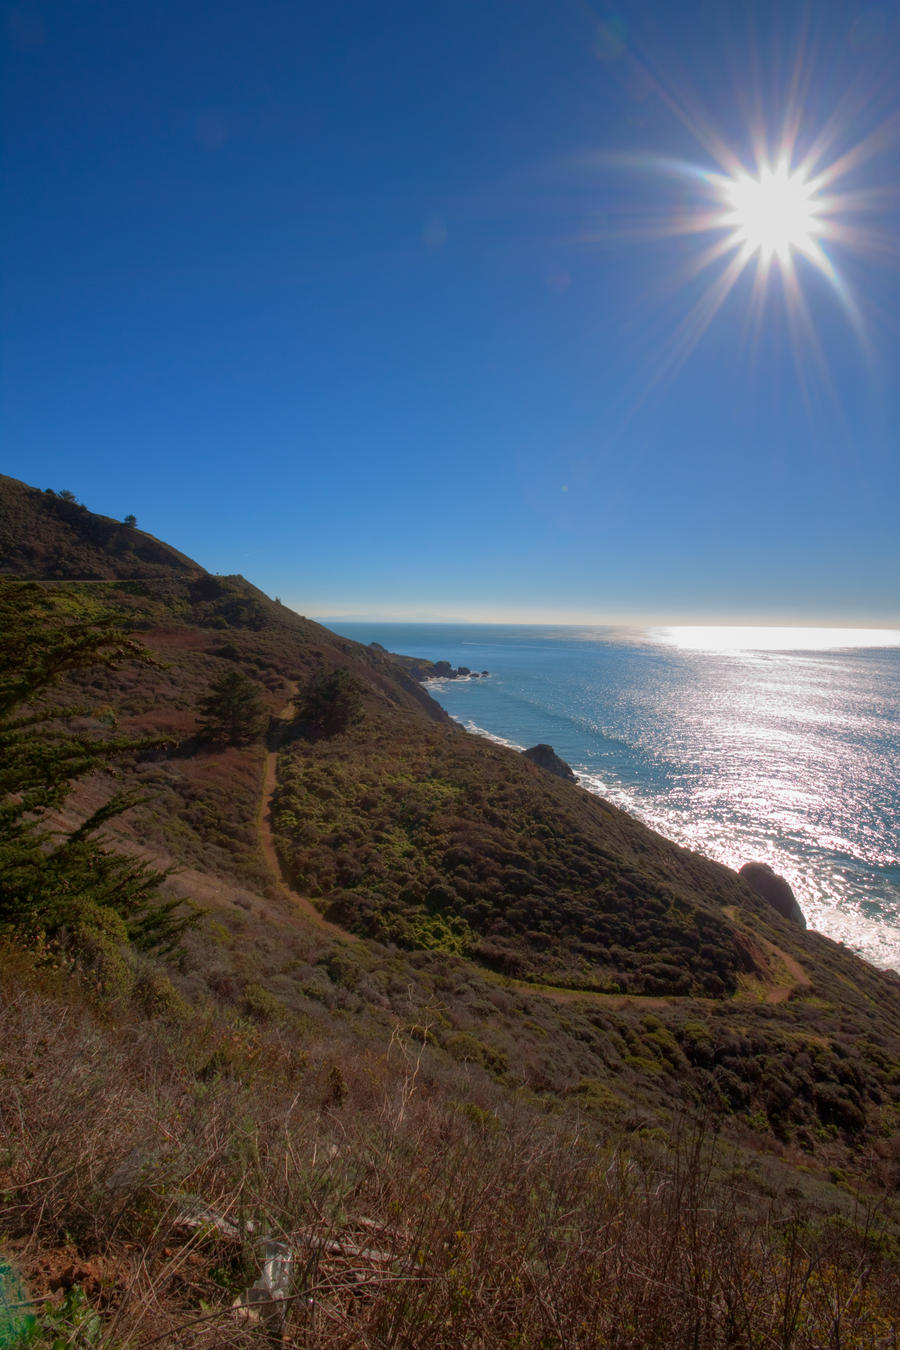 California Coast by Doogle510